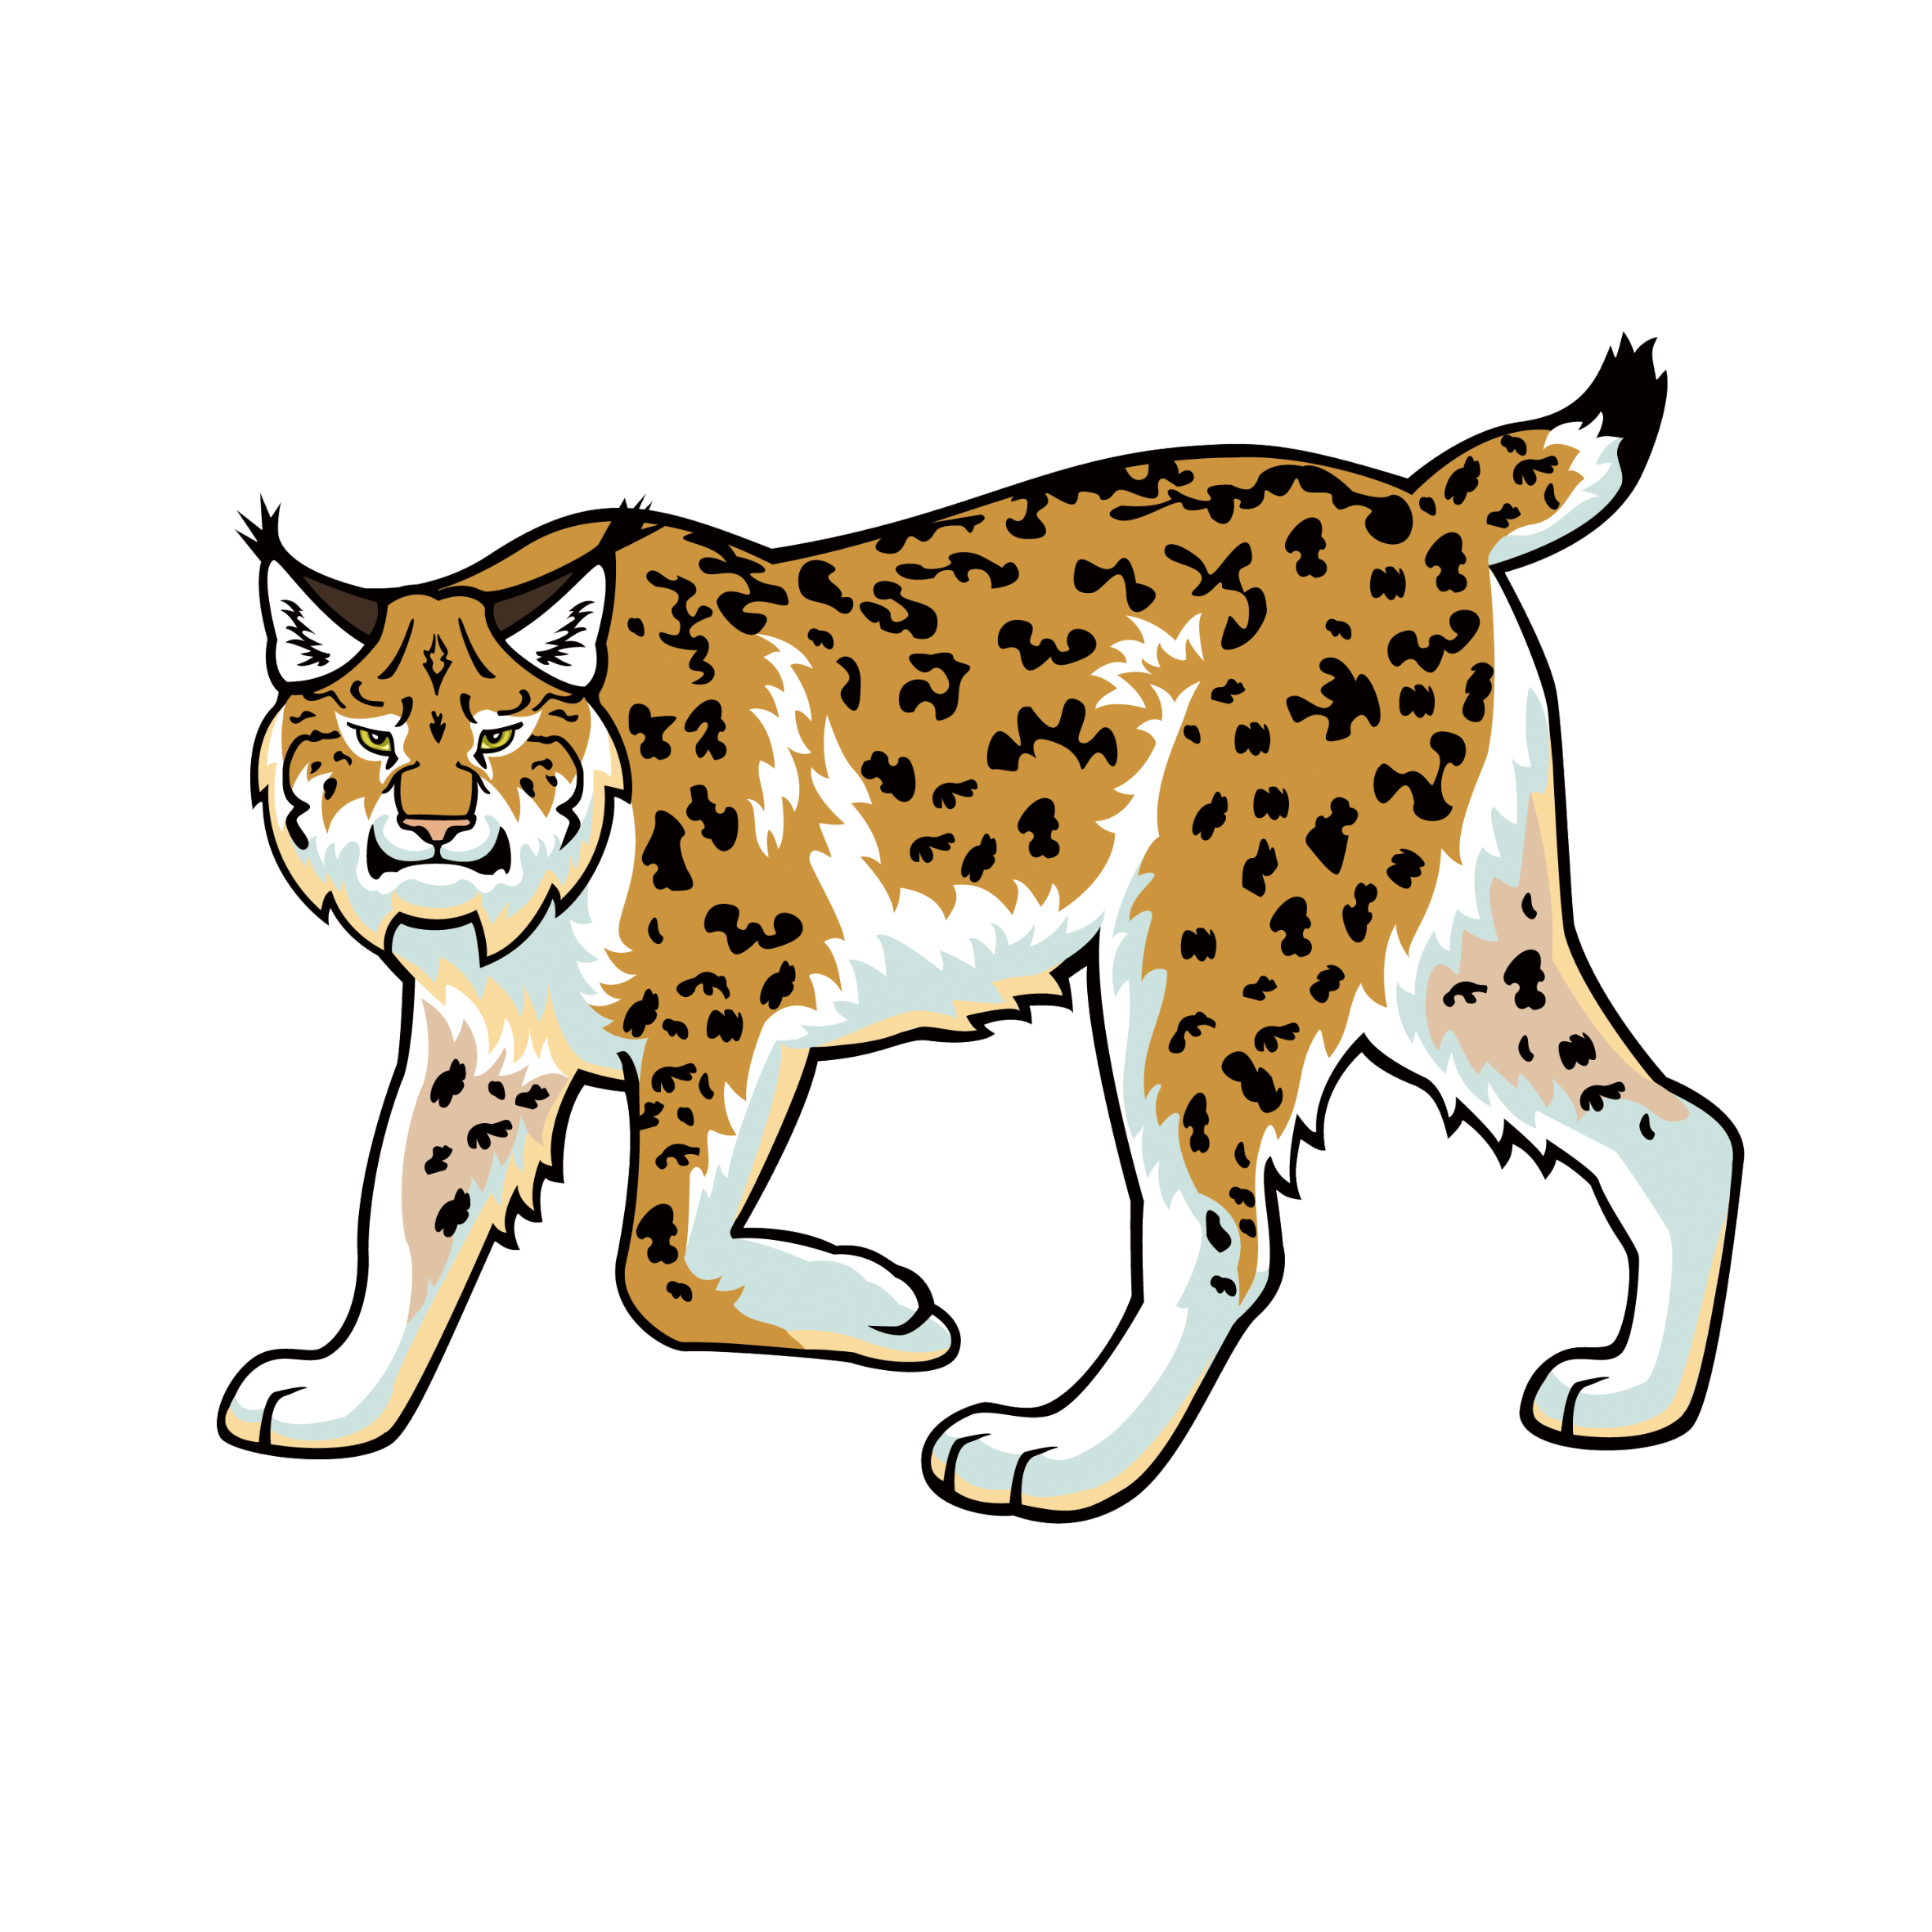 Bobcat clipart transparent. Heavy equipment clip art